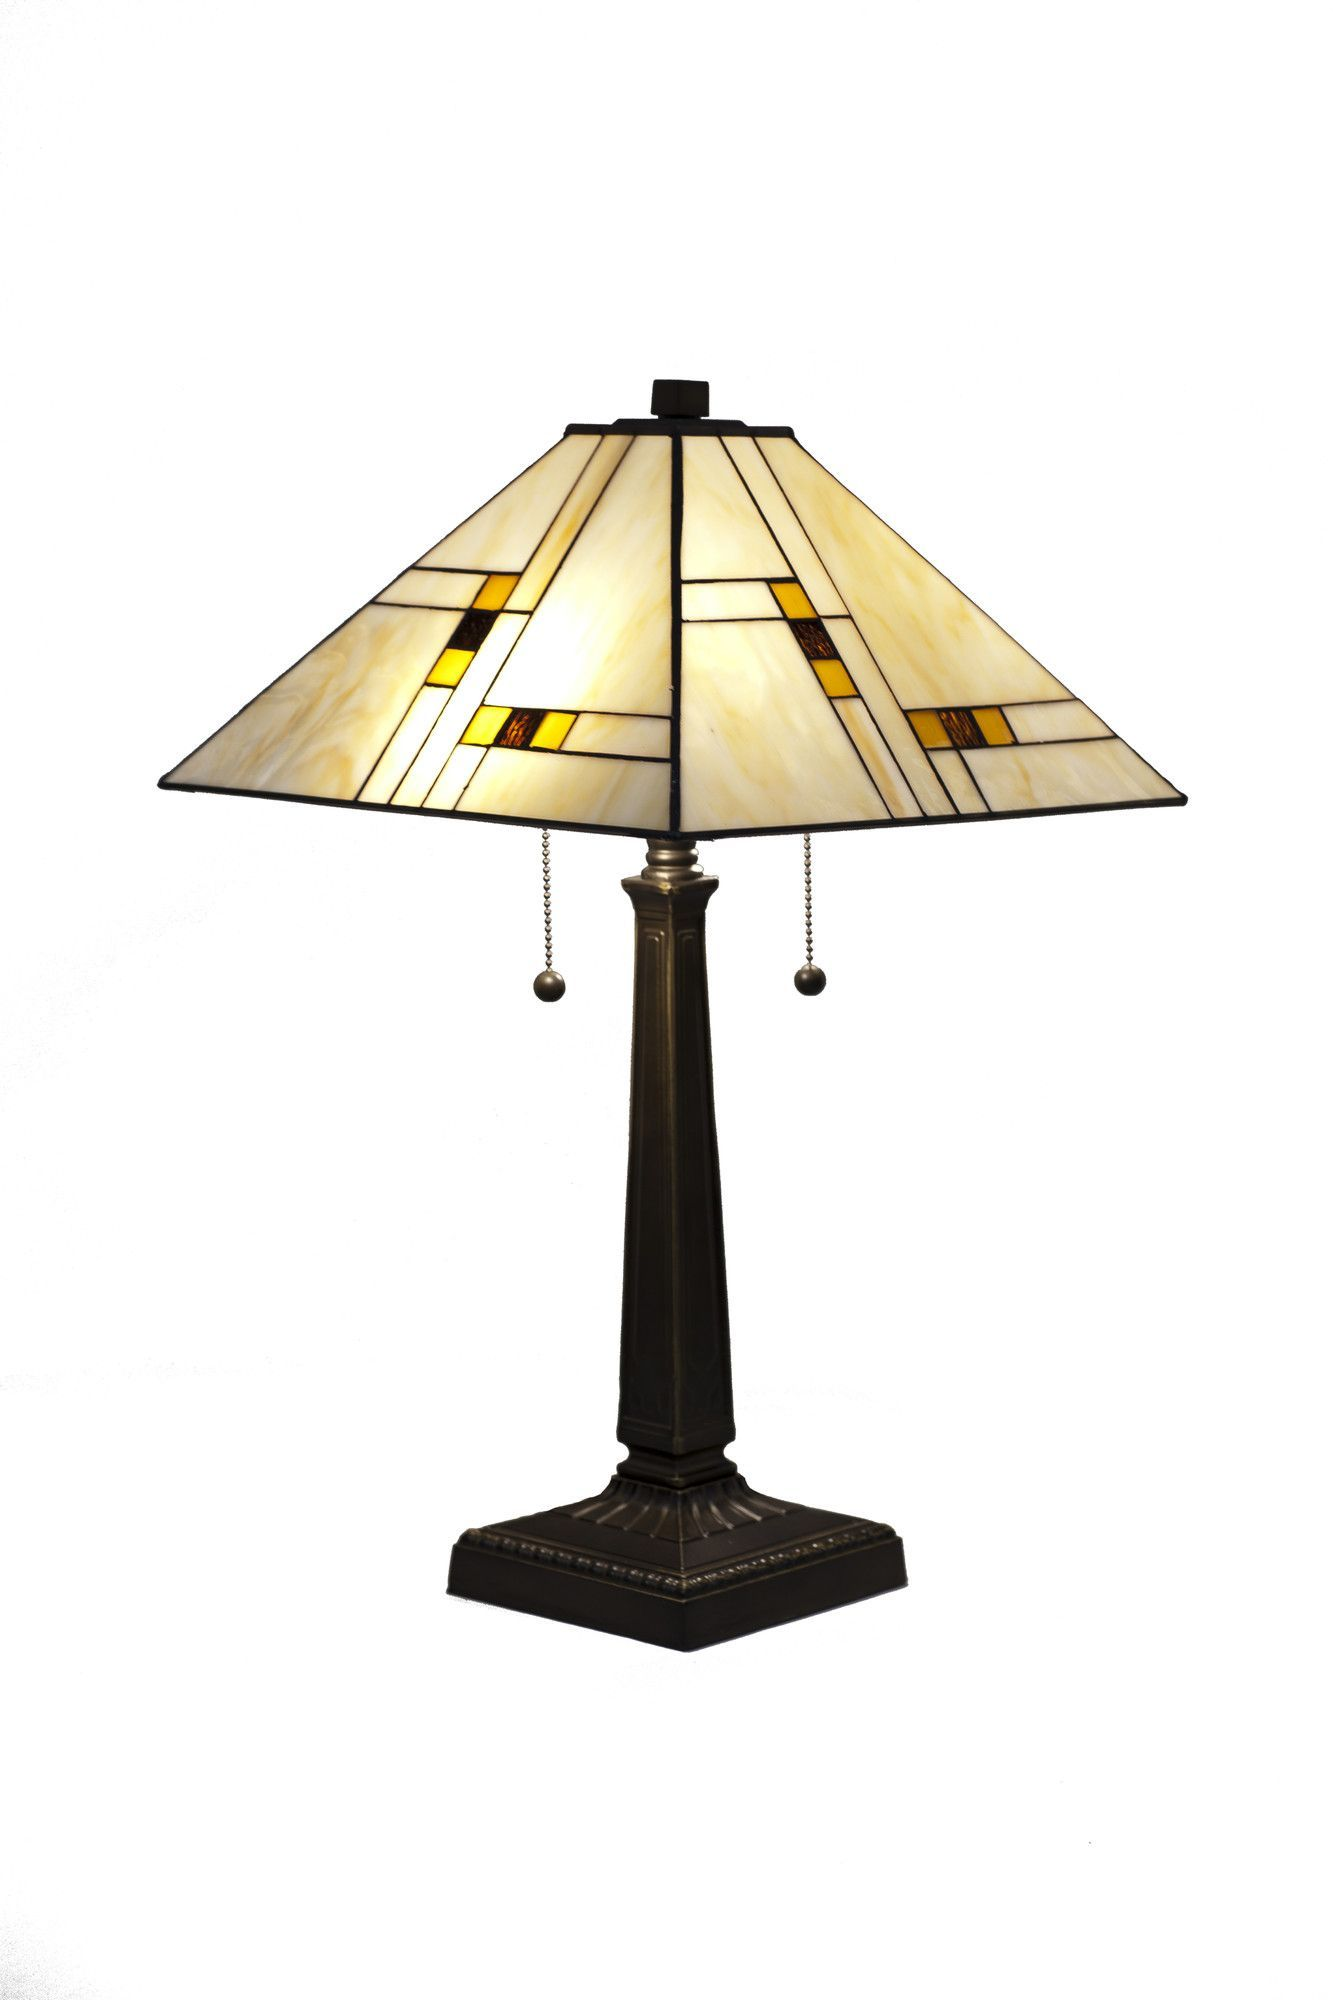 Dynamicway Serena D Italia 23 H Table Lamp With Empire Shade Bronze Table Lamp Table Lamp Stained Glass Lamp Shades